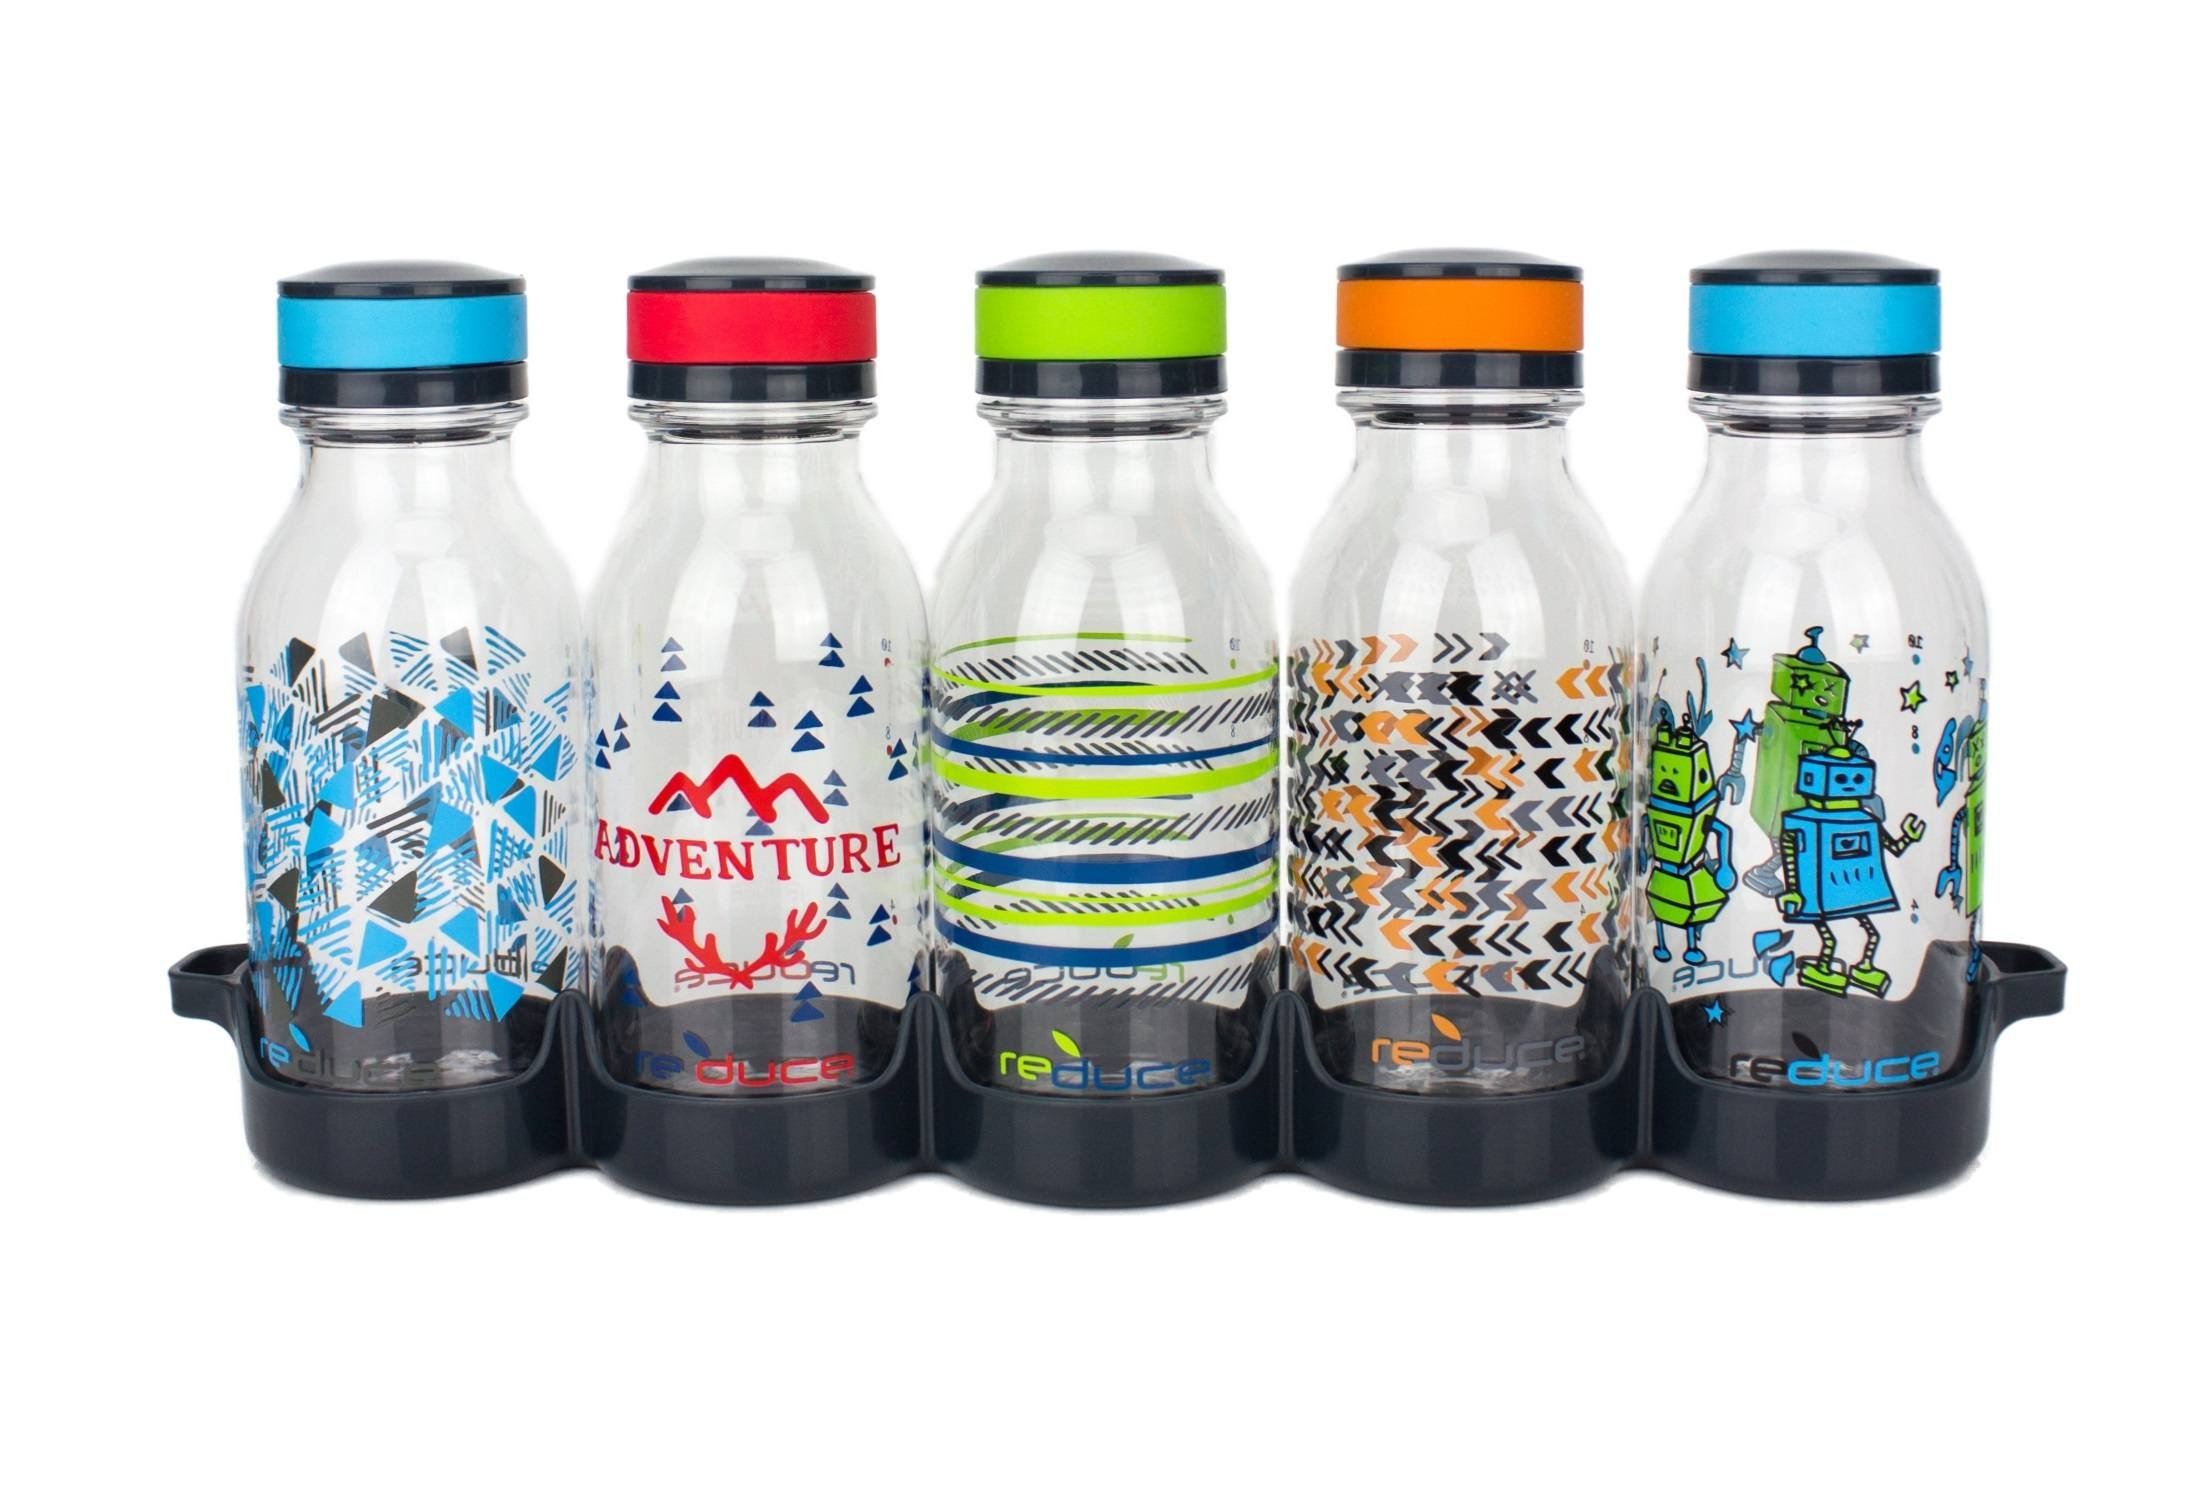 reduce WaterWeek Kids Reusable Water Bottle Set with Fridge Tray - 5 Flask Pack, 14oz - Cute and Colorful Adventure Design - BPA Free, Leak-Proof Twist Off Cap - Perfect for Lunchboxes and Road Trips